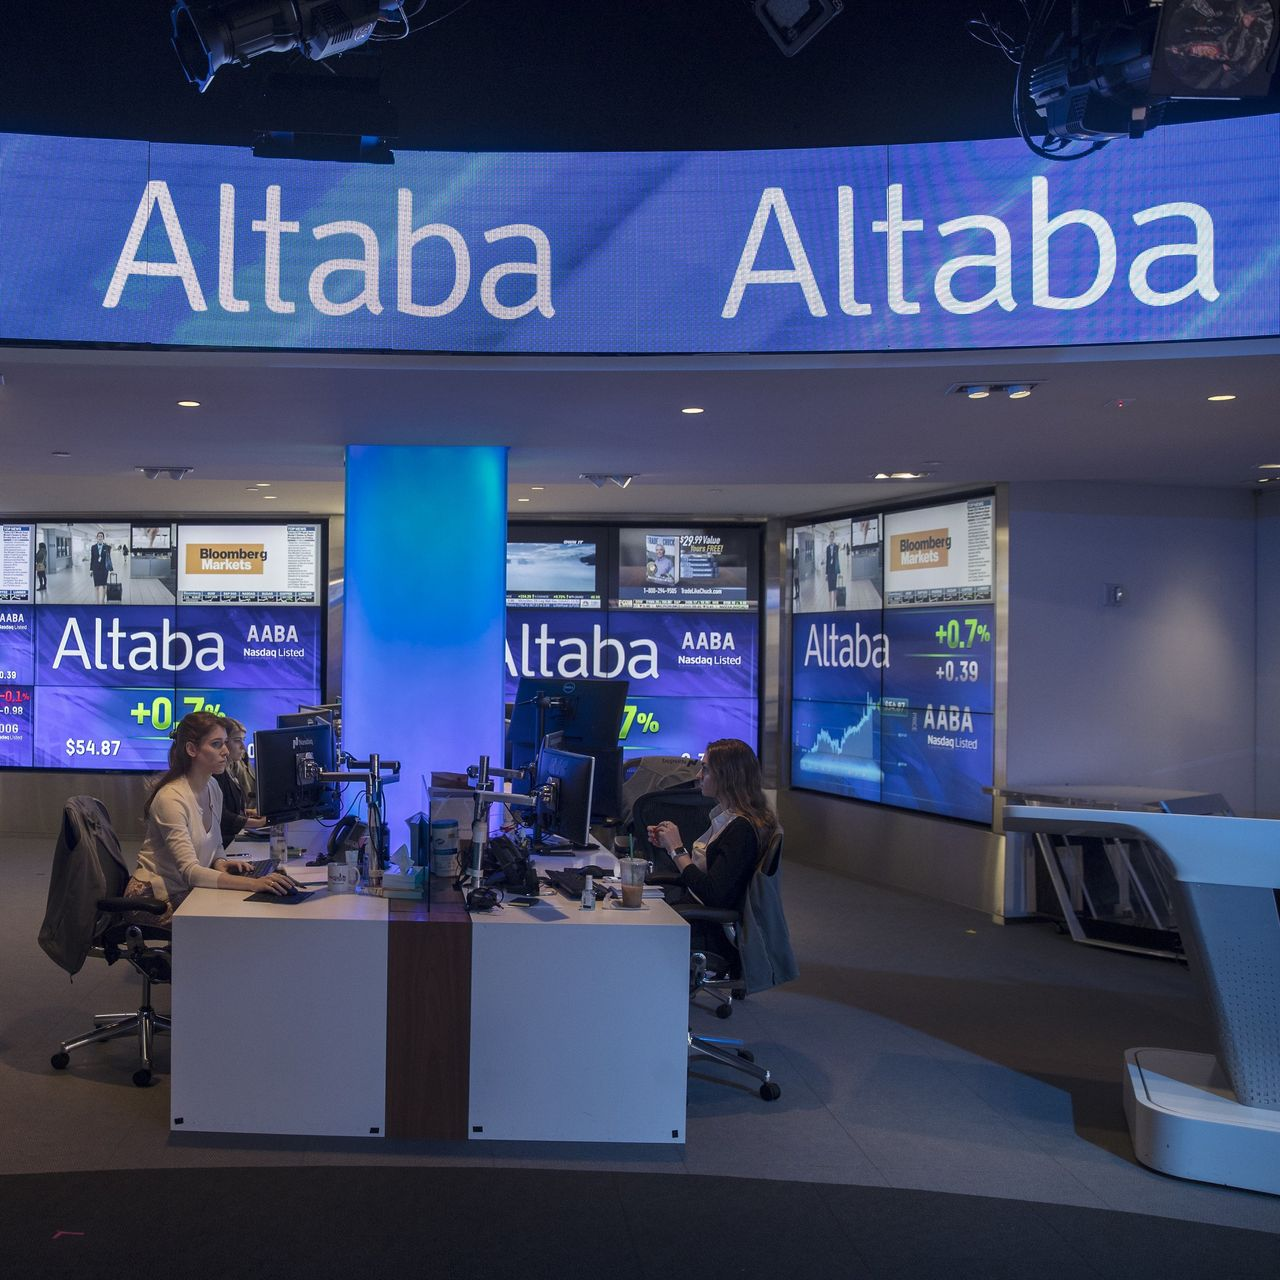 All Bout Liquidation of Altaba Inc. And What Happened There?